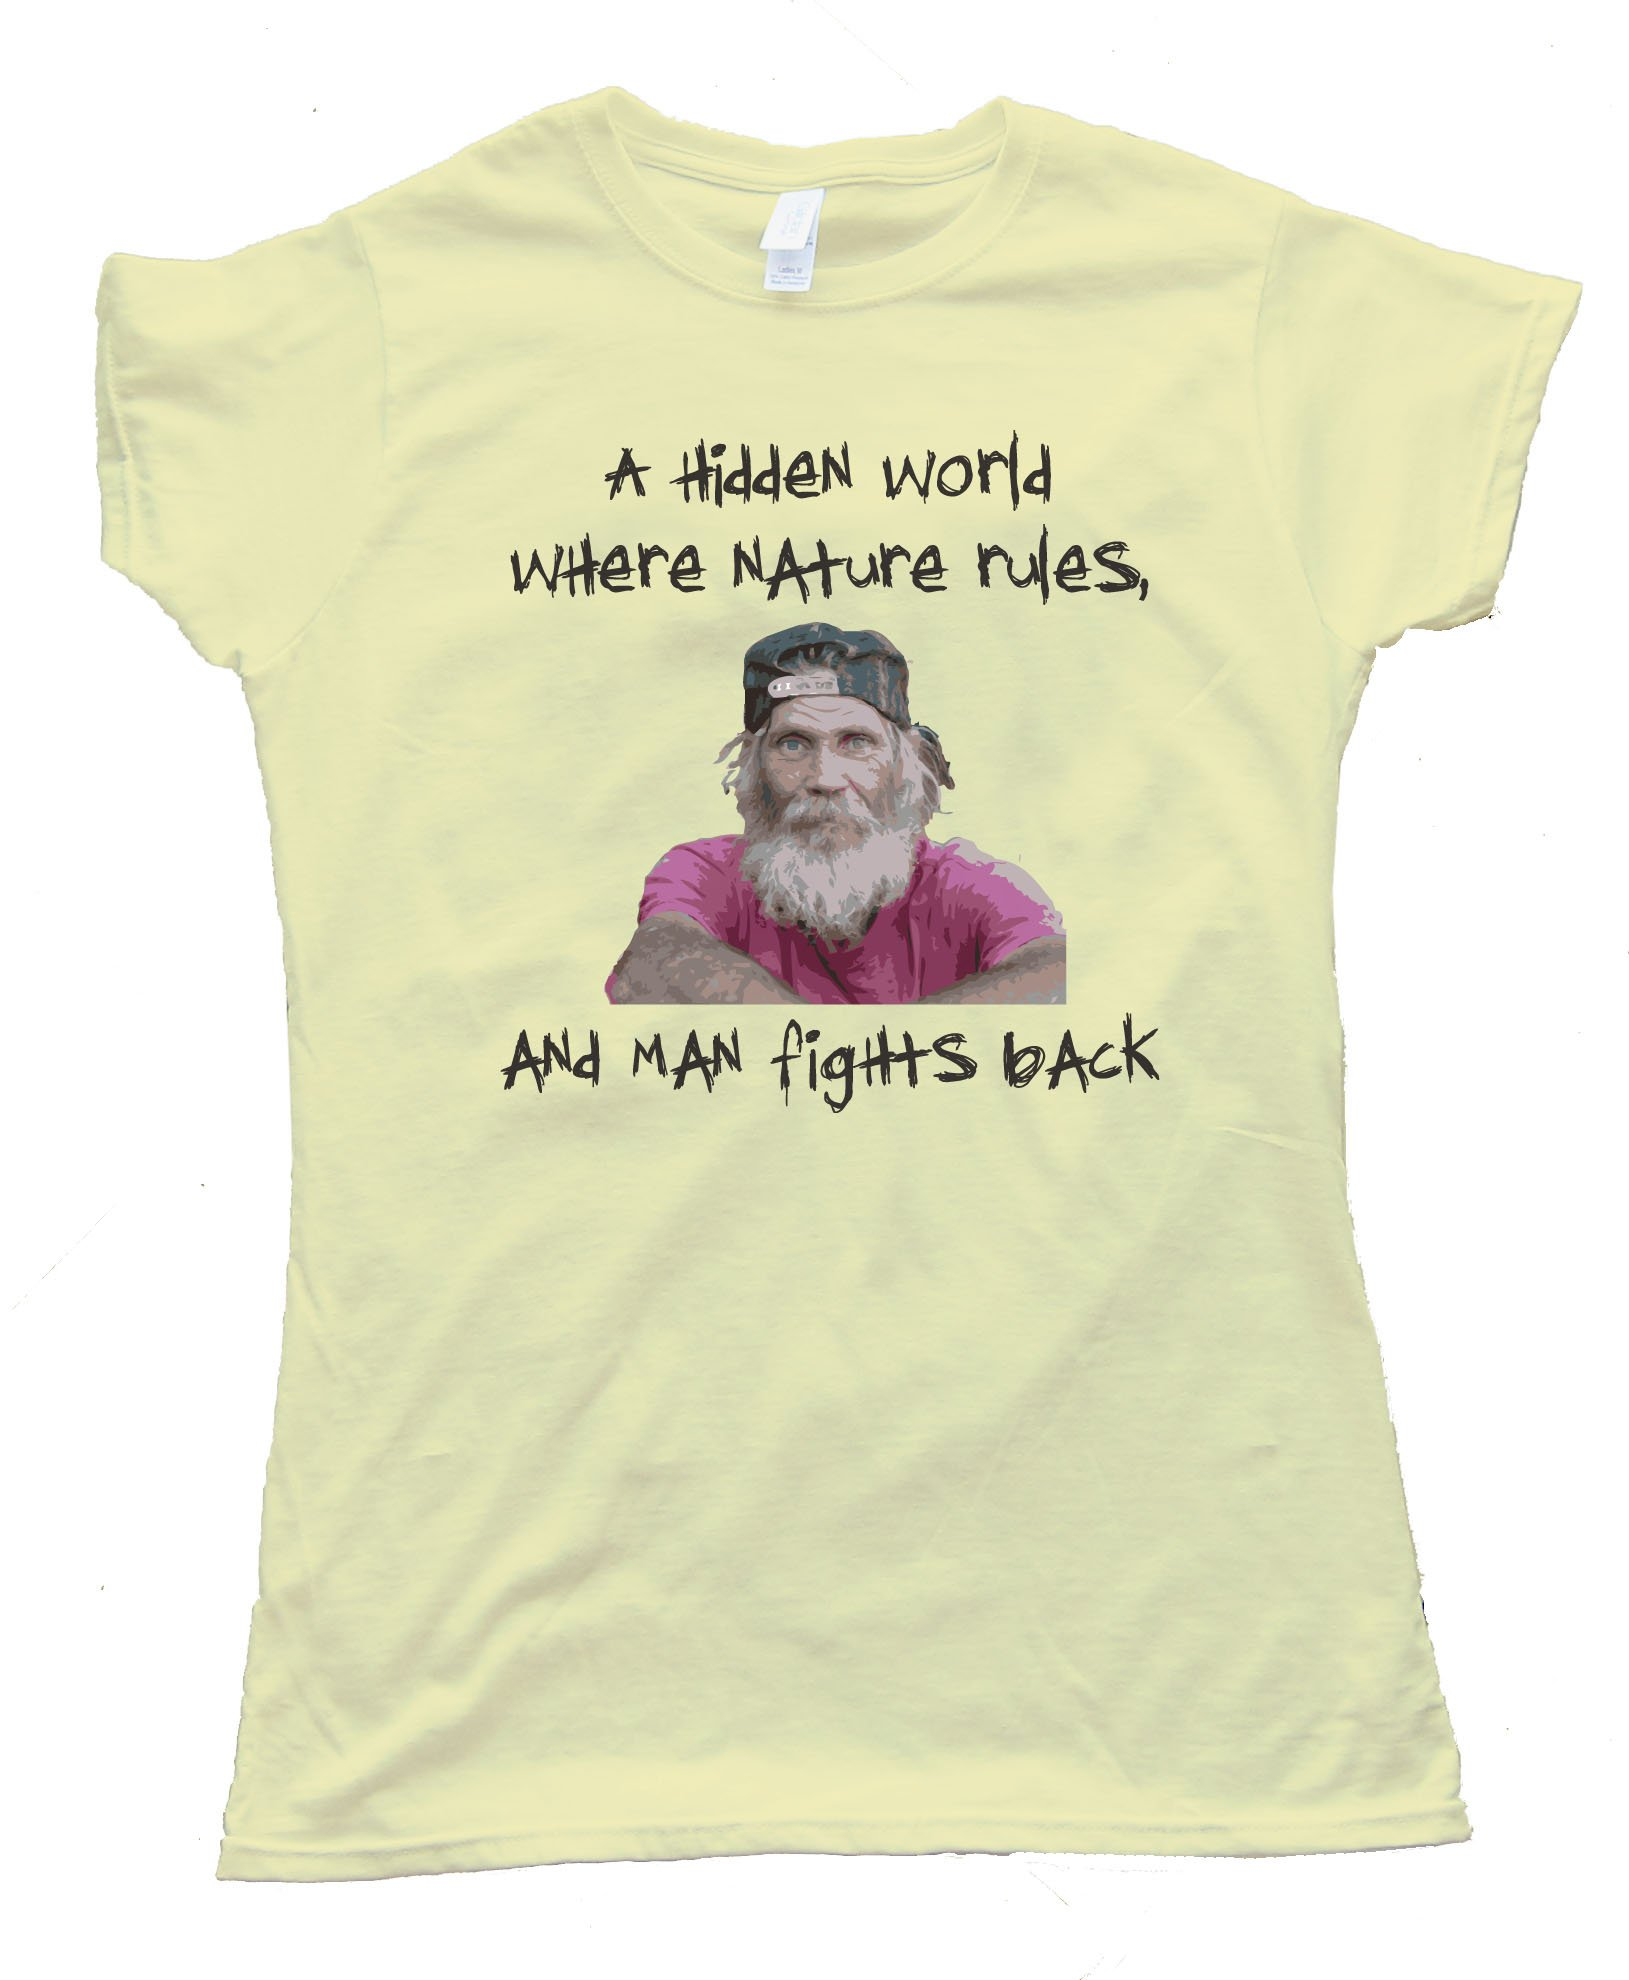 Womens A Hidden World Where Nature Rules - And Man Fights Back Swamp People Tee Shirt